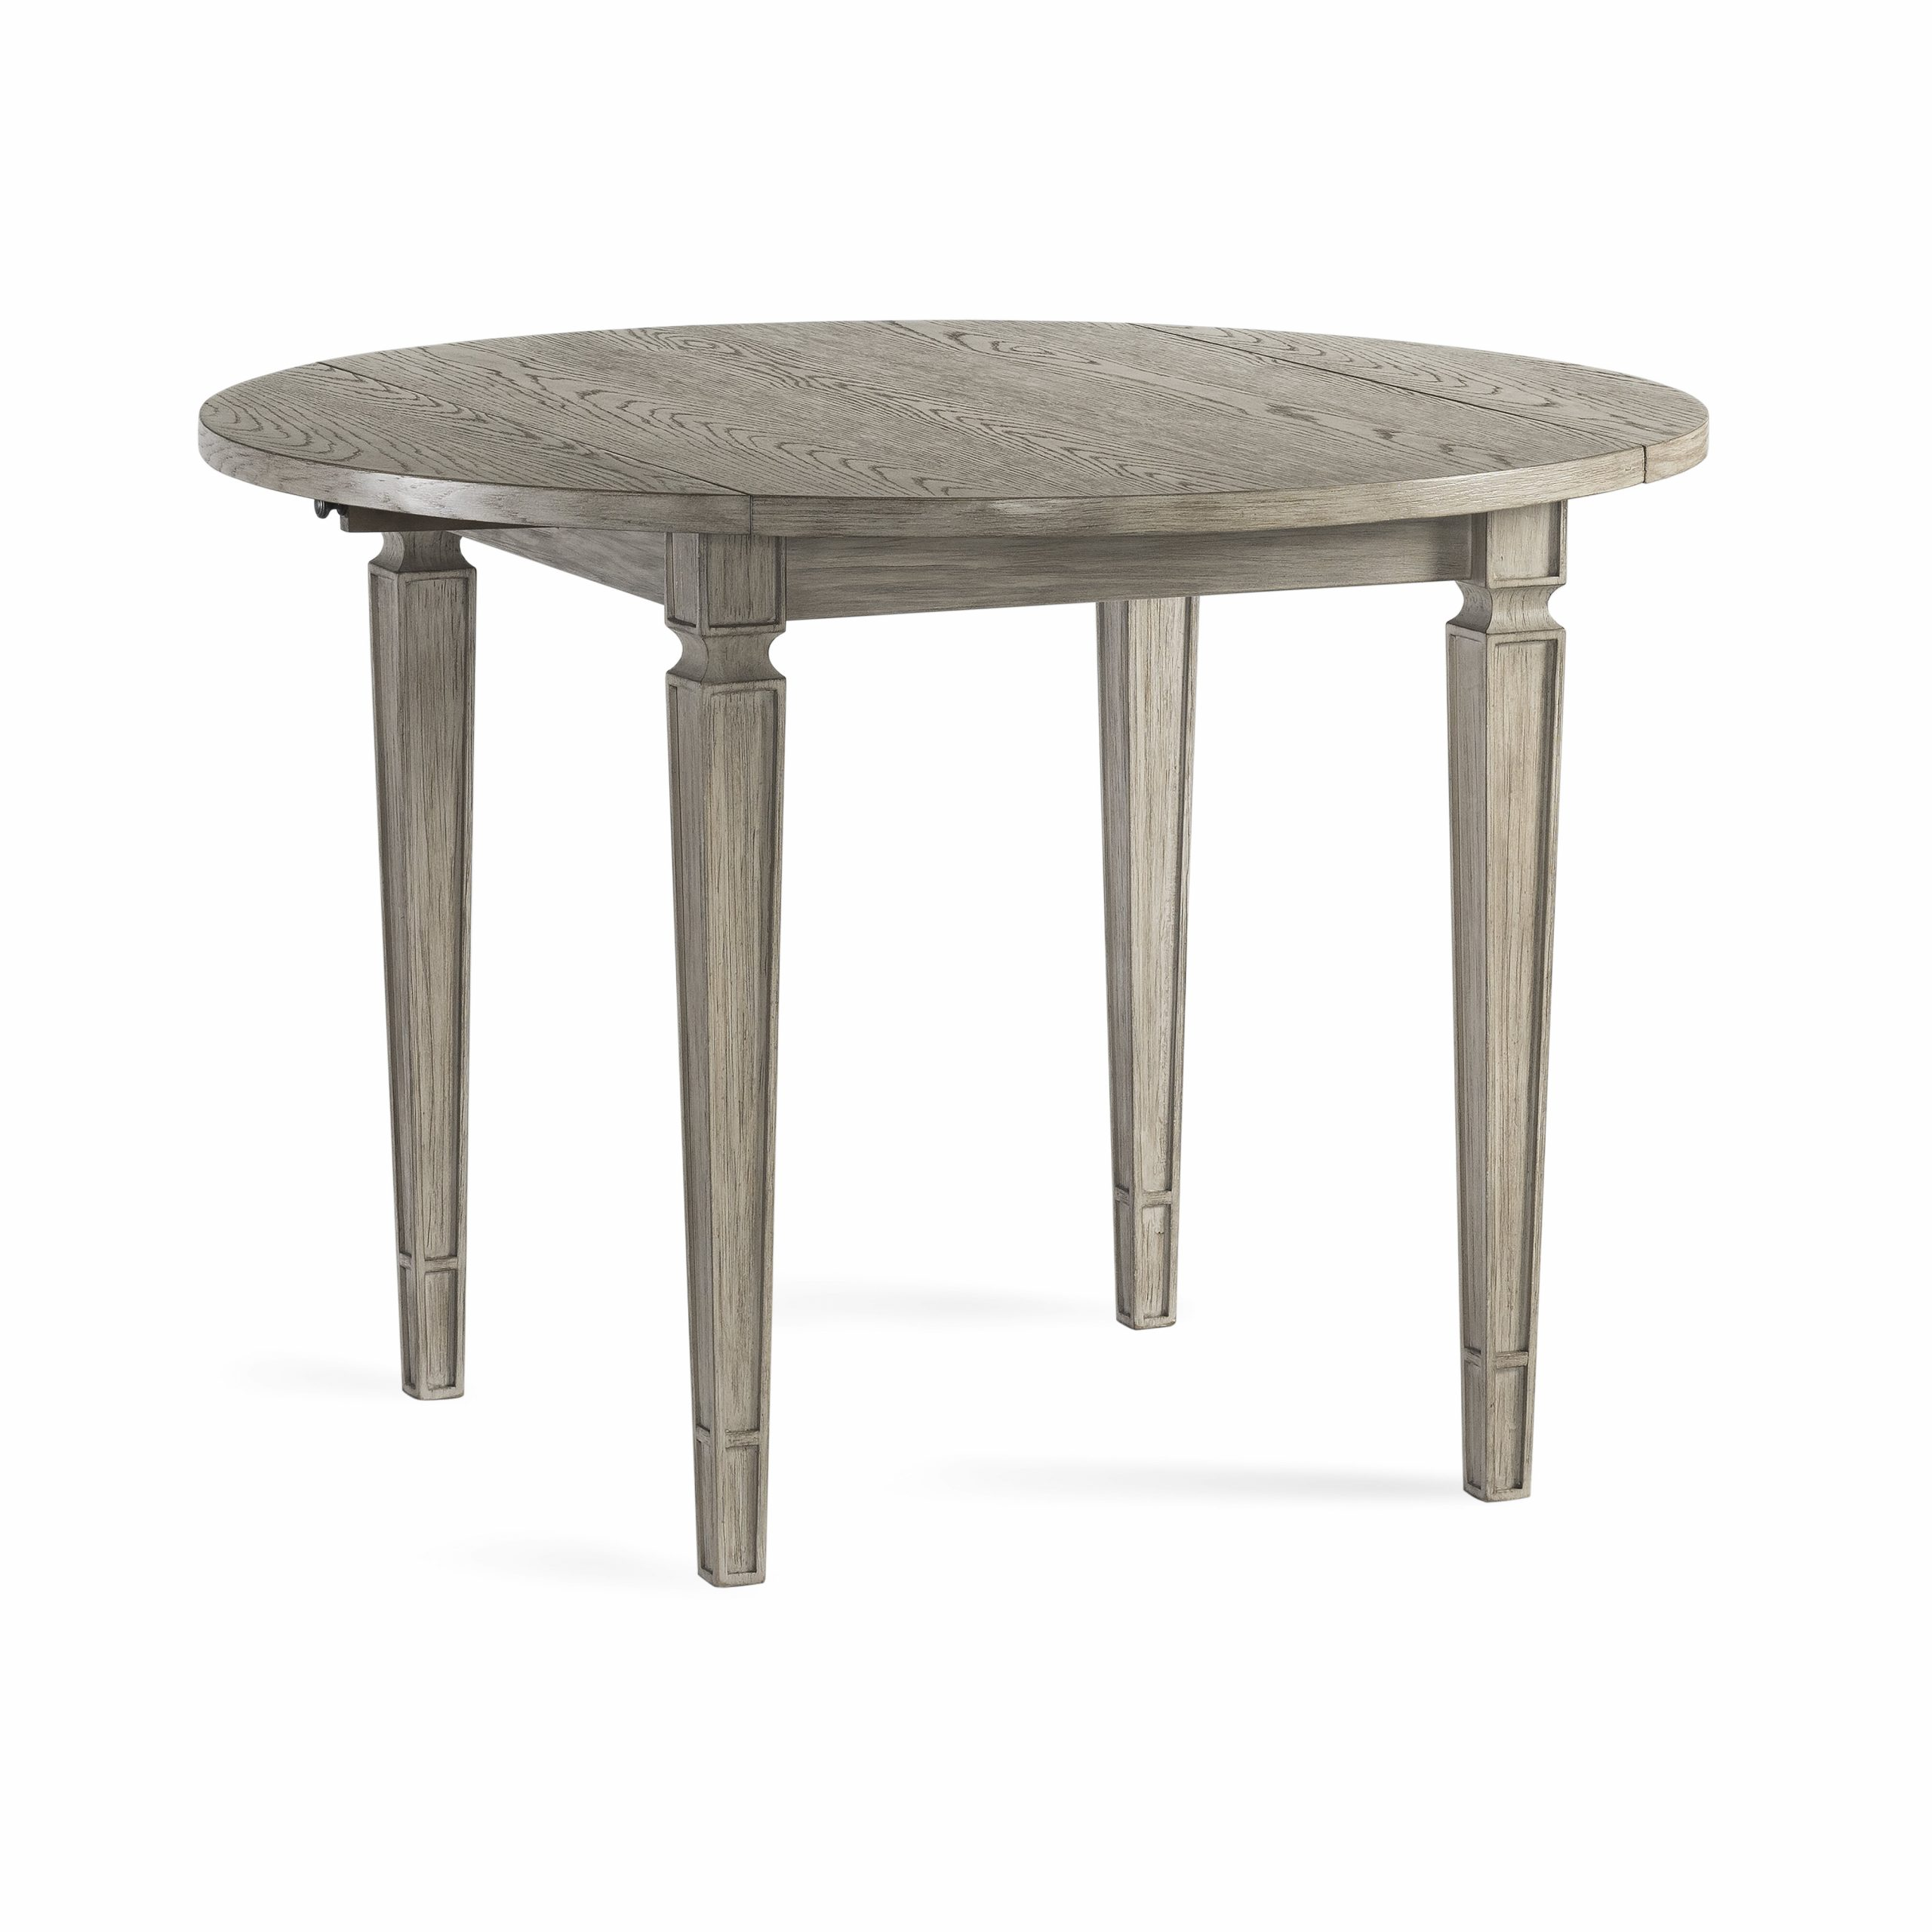 Jewell Drop Leaf Dining Table Regarding Latest Cleary Oval Dining Pedestal Tables (View 14 of 25)